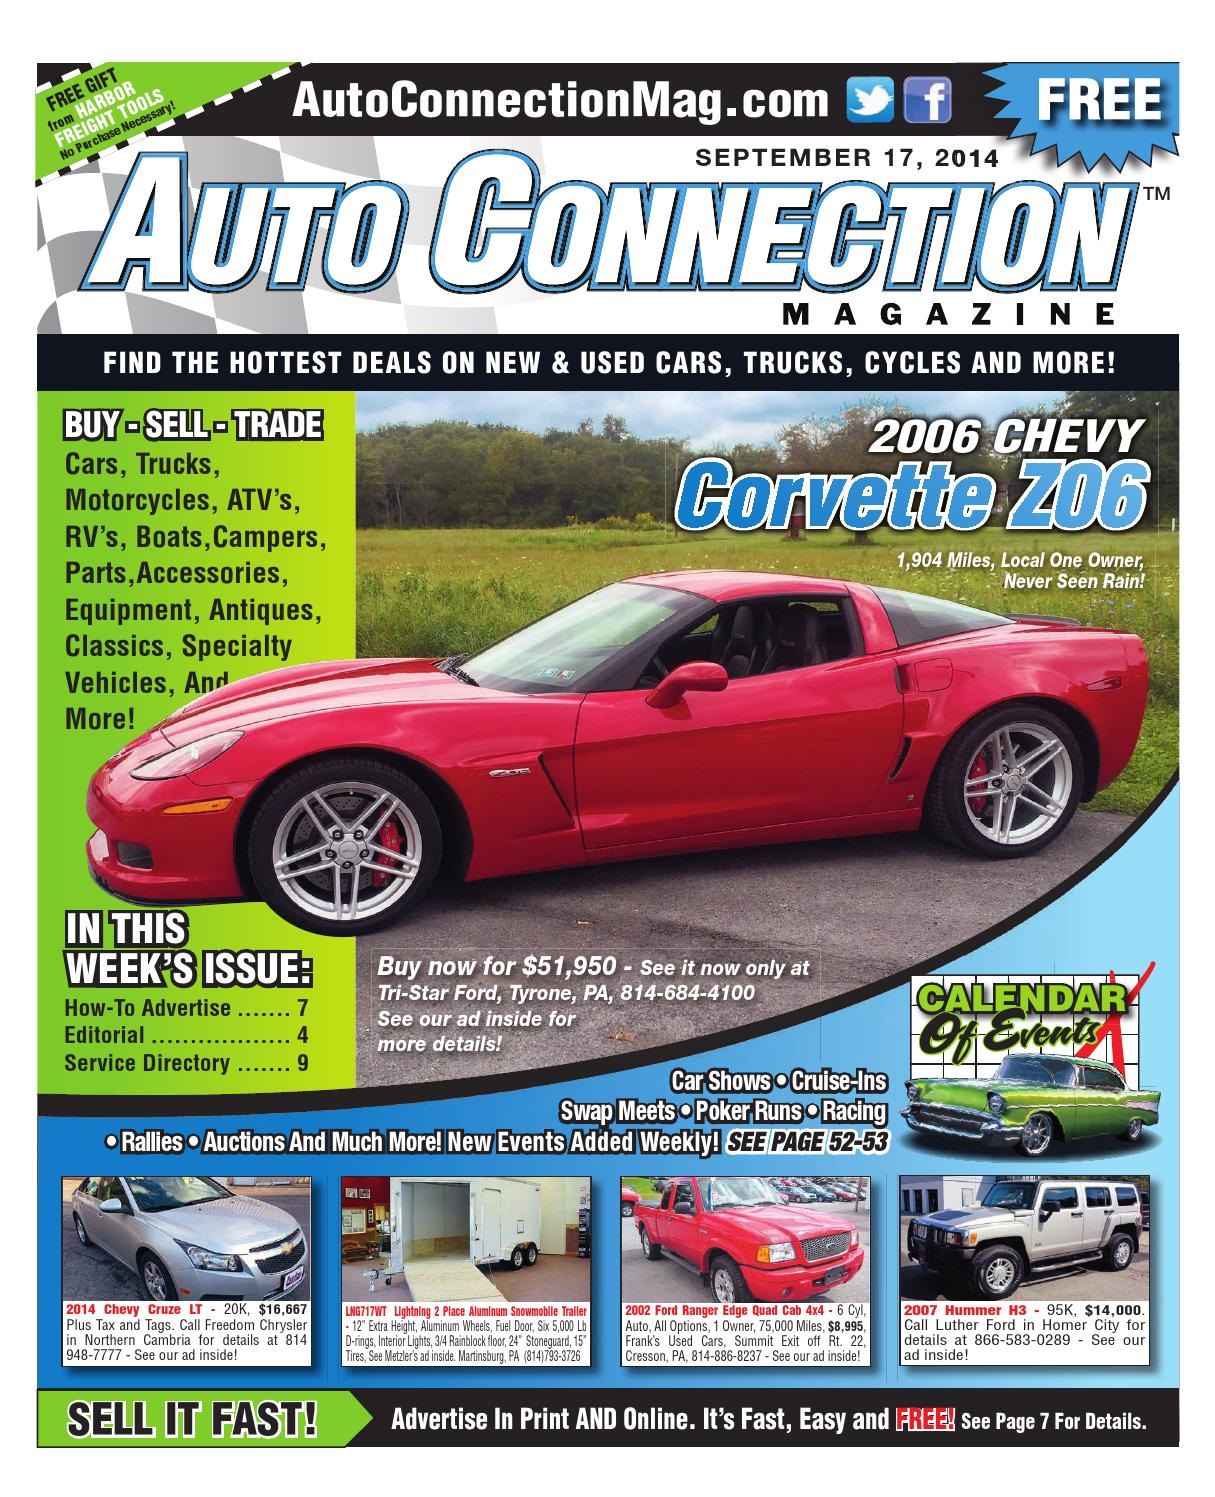 09 17 14 Auto Connection Magazine By Issuu 1995 Chevy 6 5 Turbo Sel